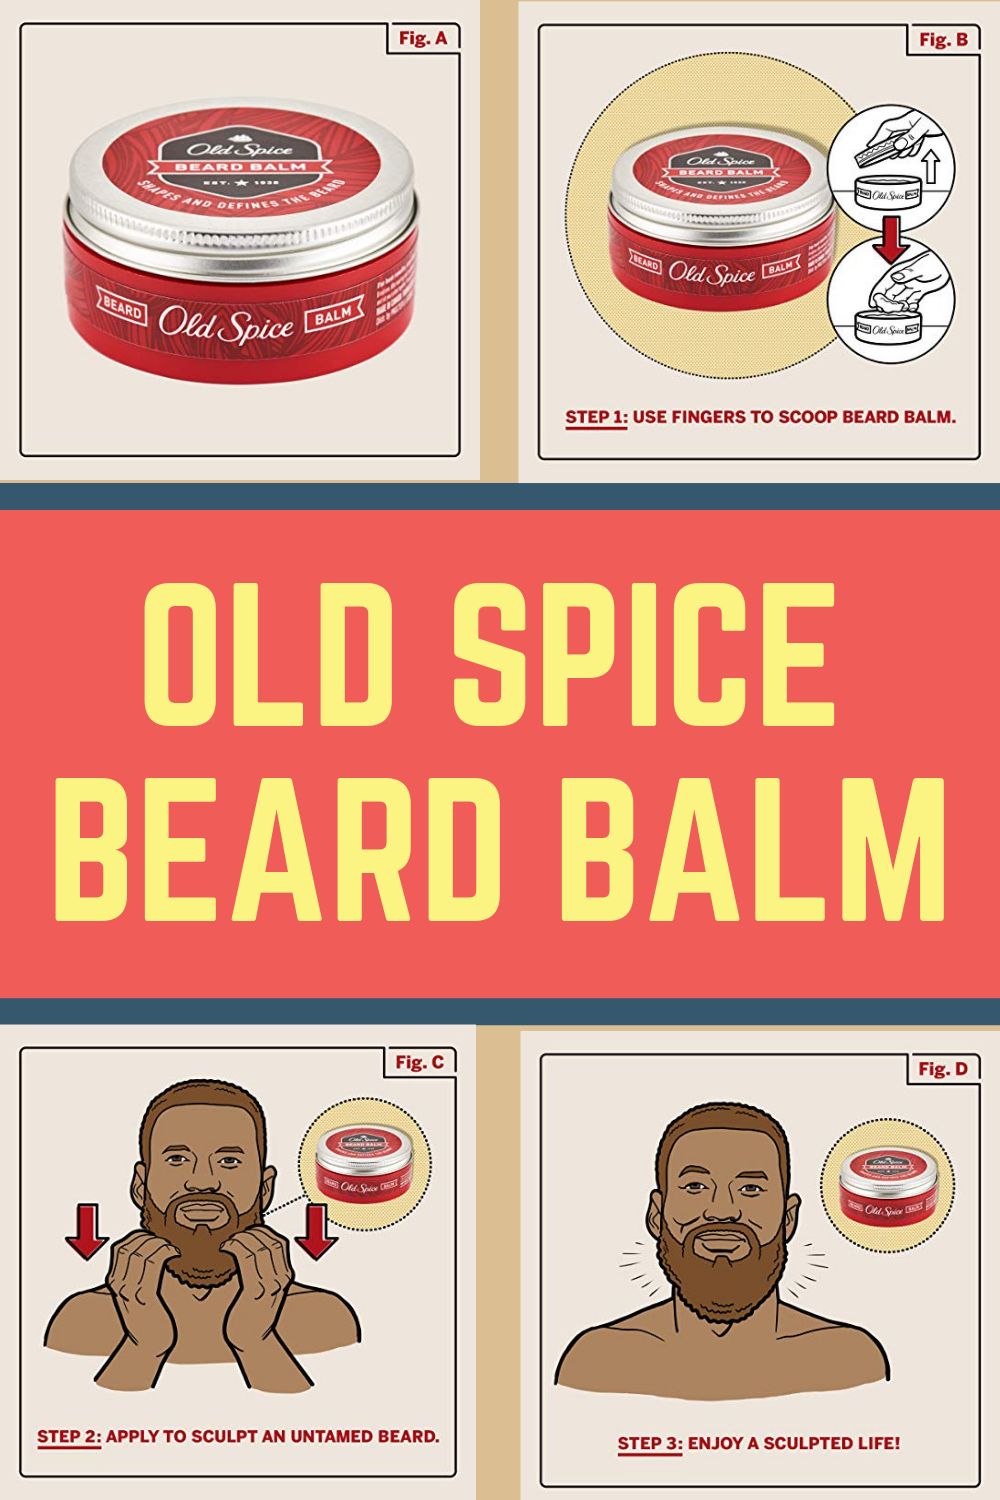 The aftermath of using Old Spice beard balm for men